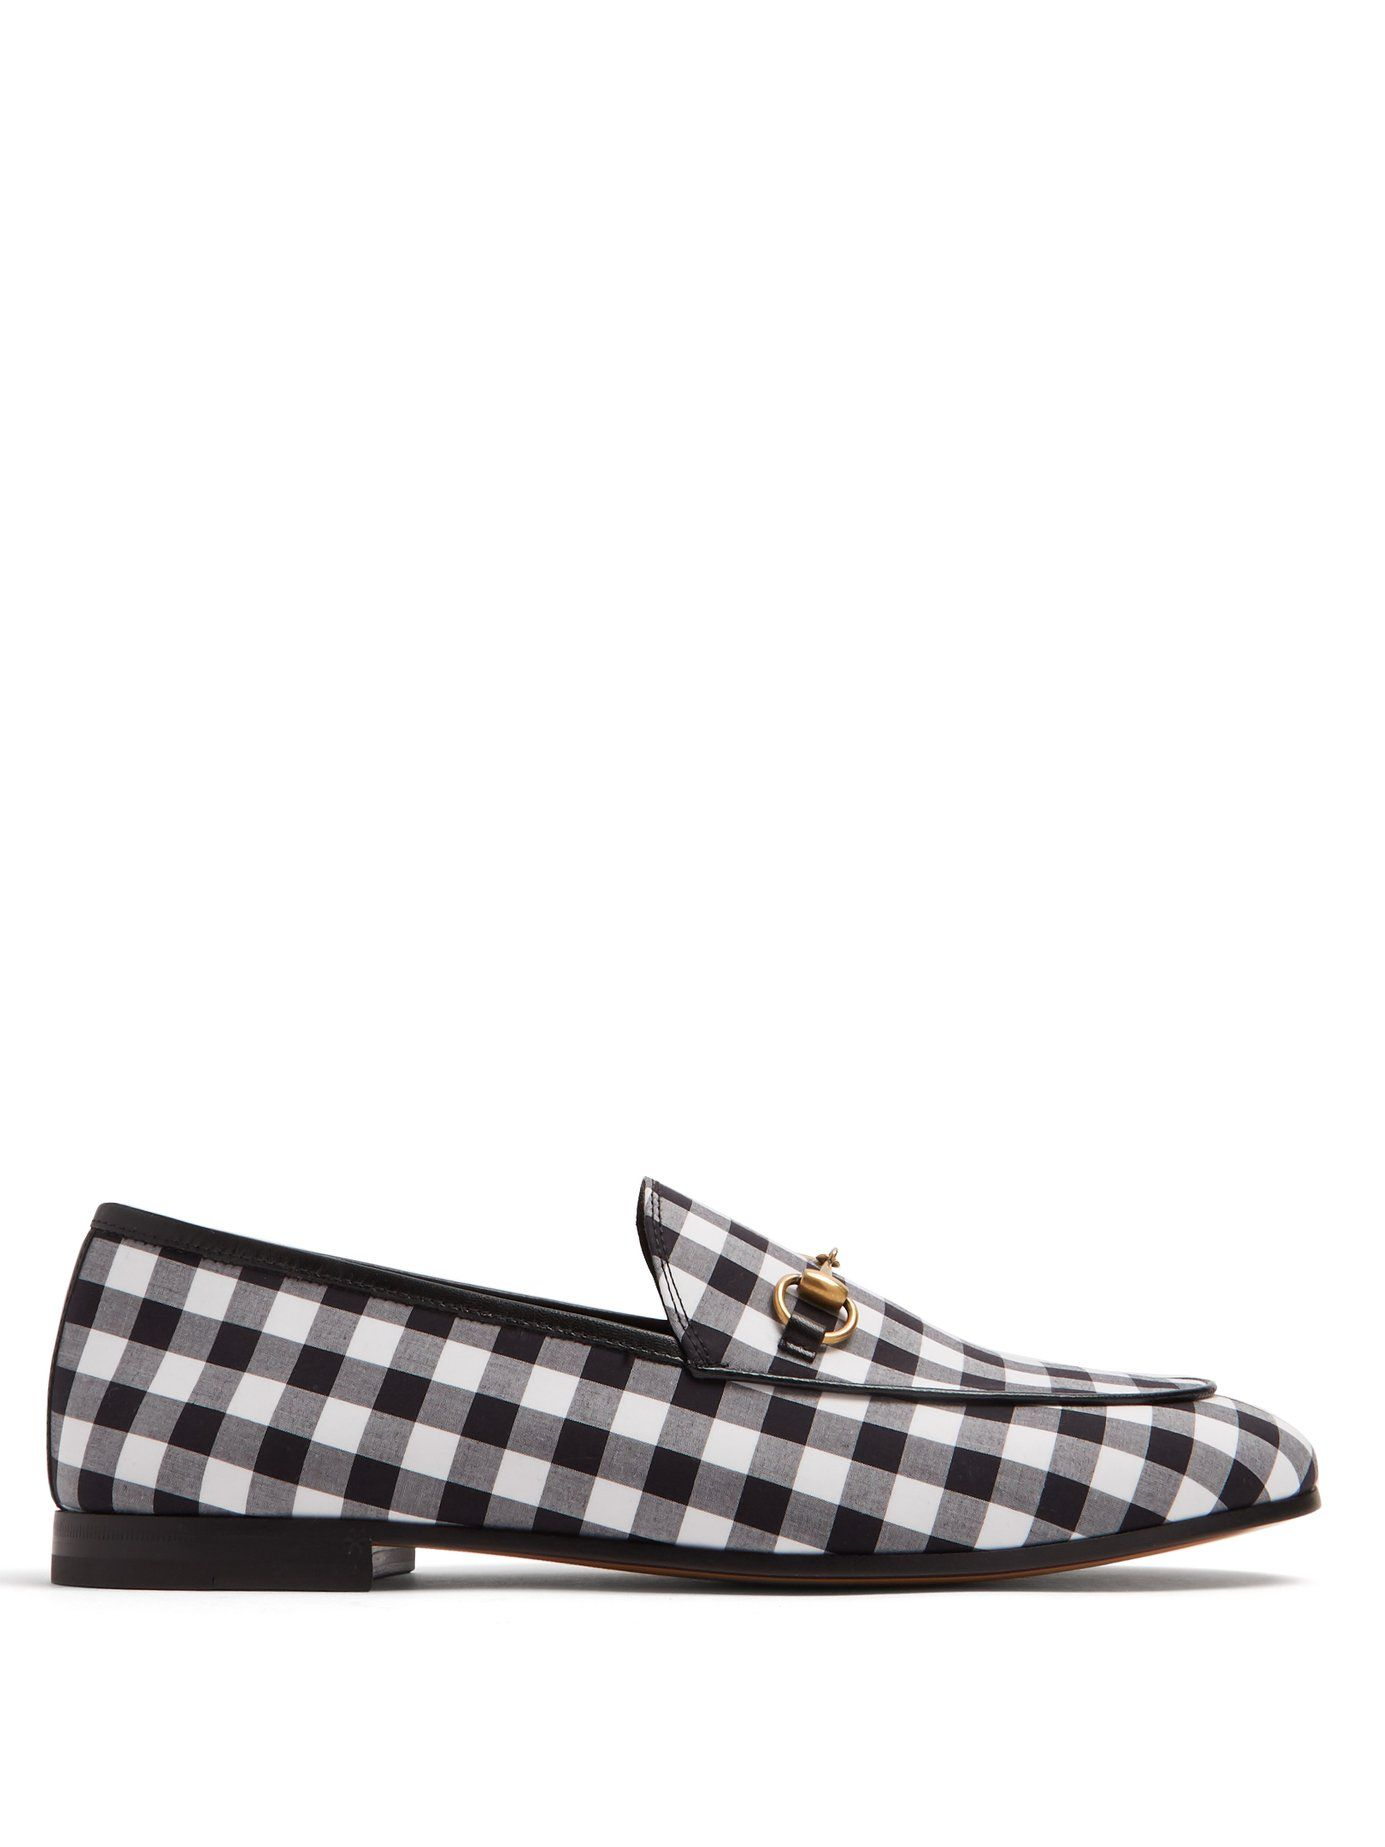 8a1111995e9 Jordaan gingham loafers